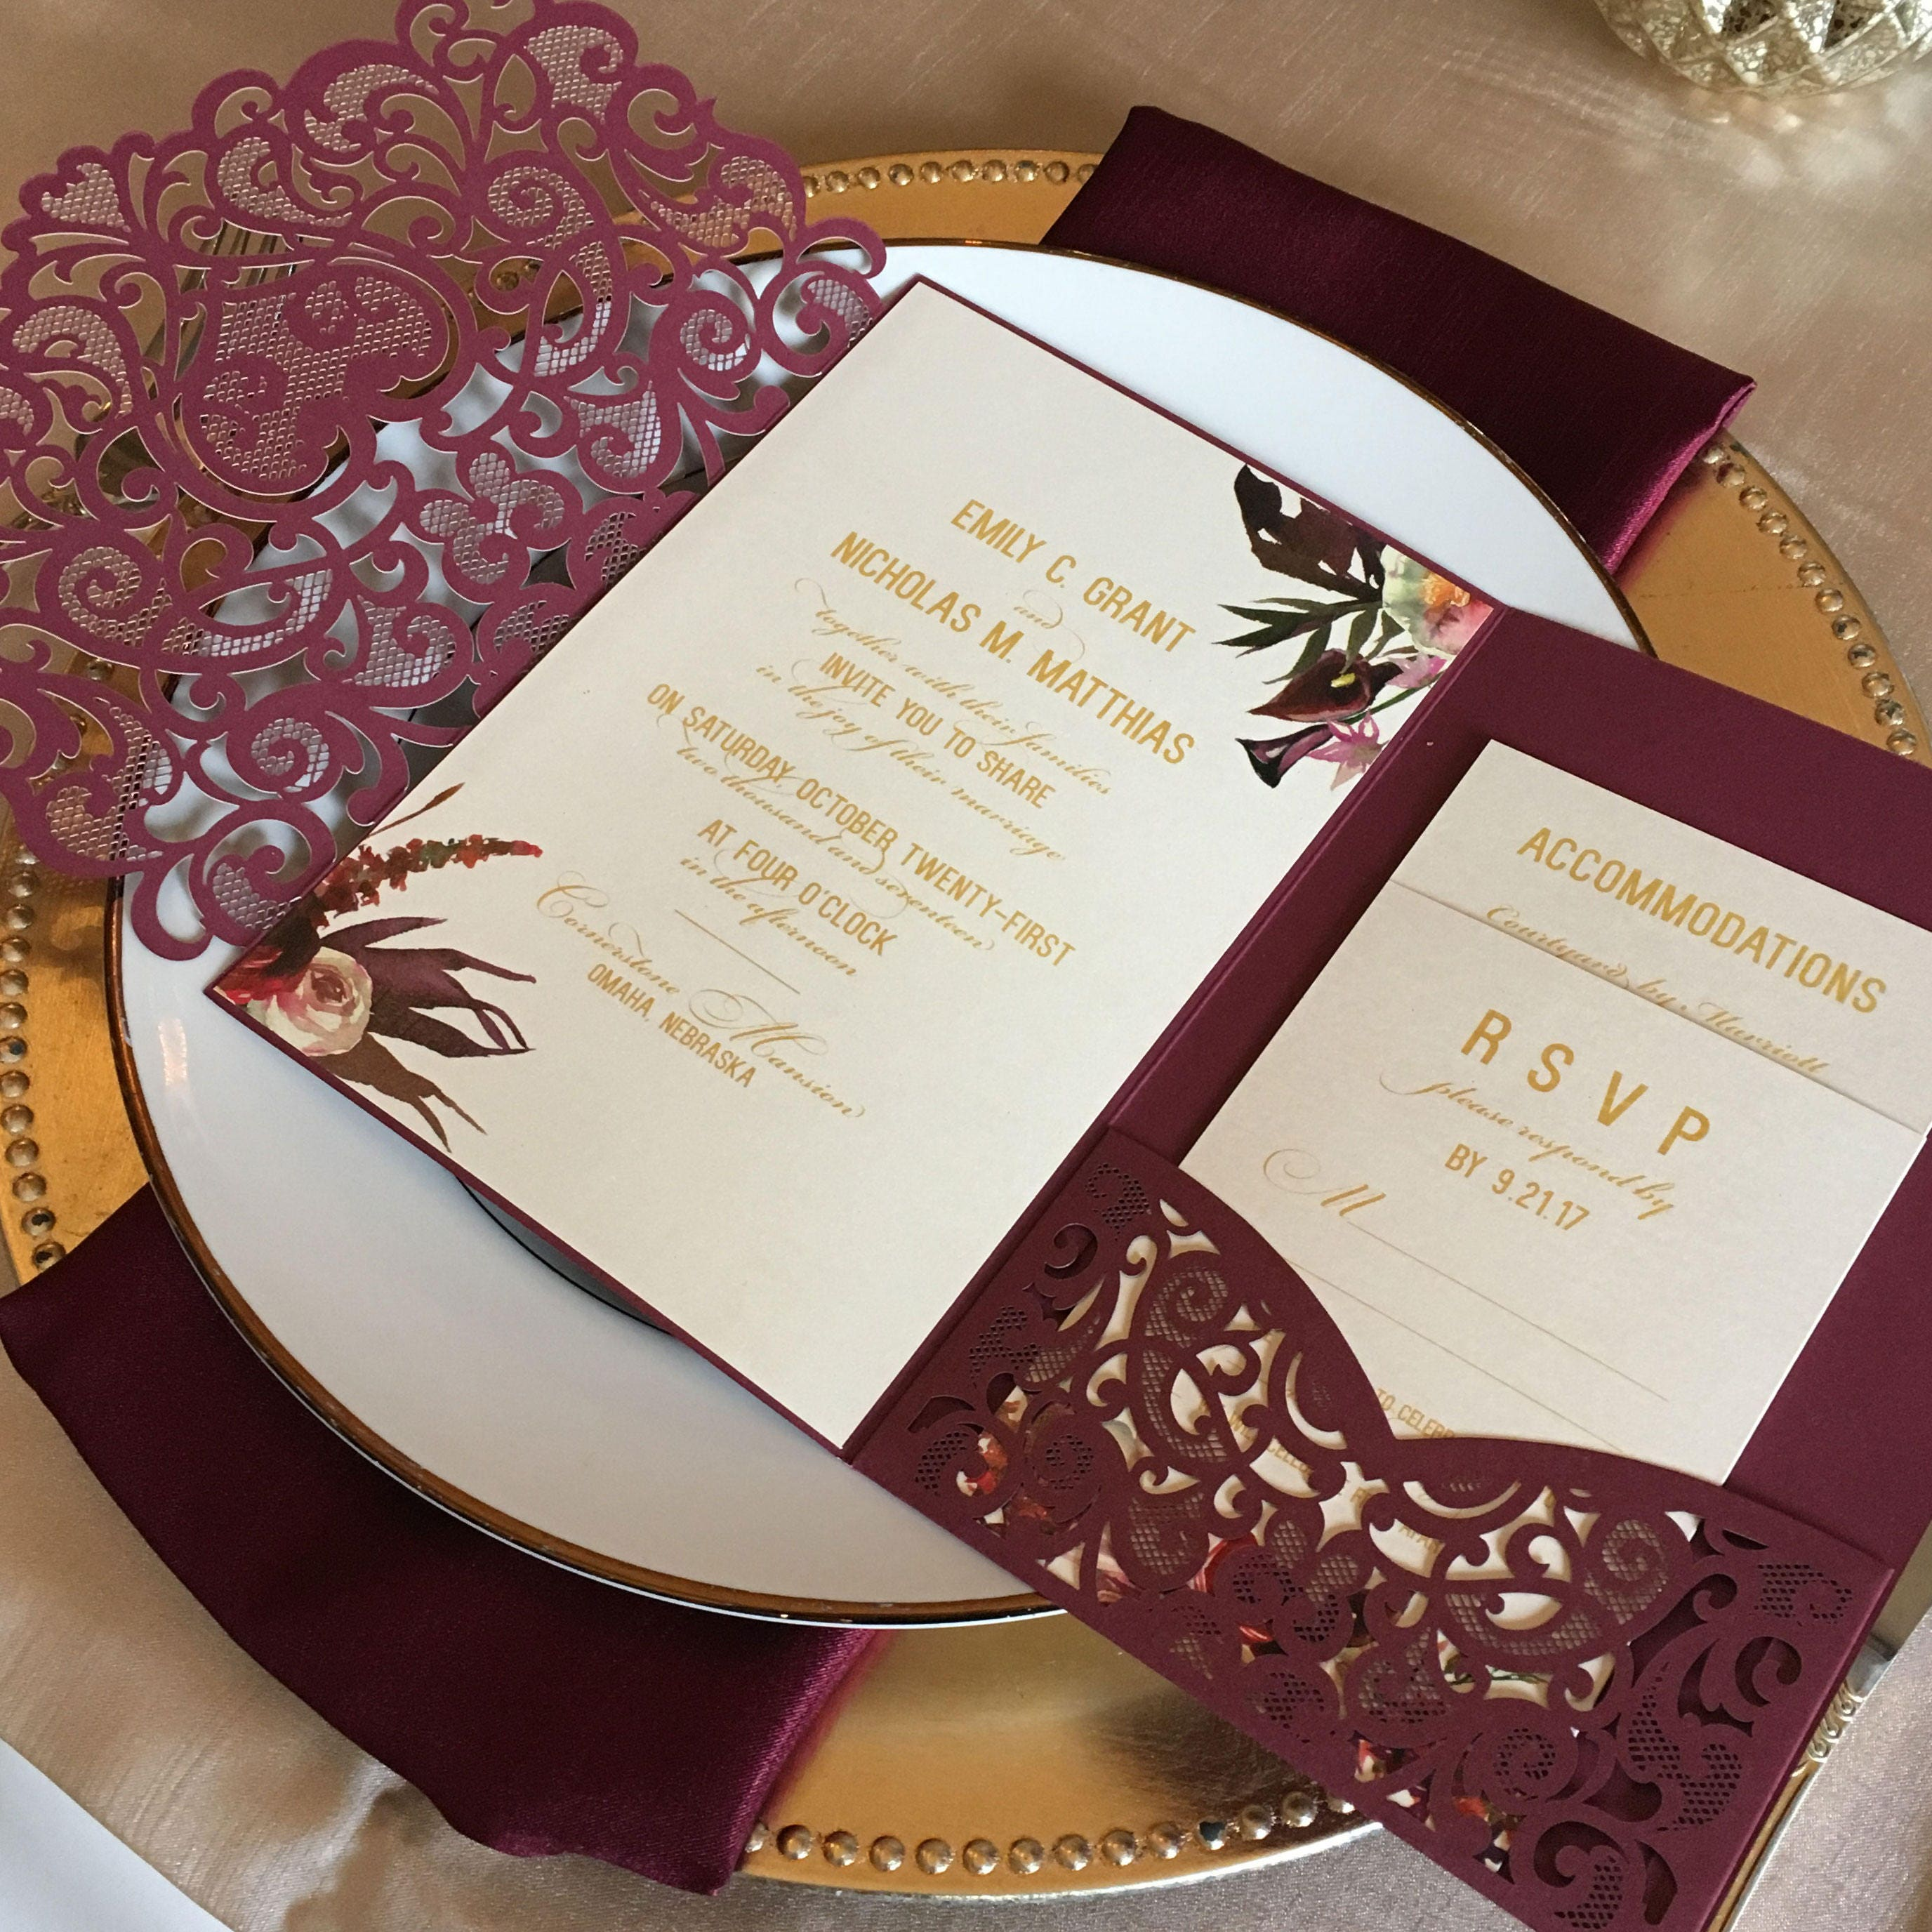 Laser cut pocket wedding invitation kit burgundy wedding zoom monicamarmolfo Image collections